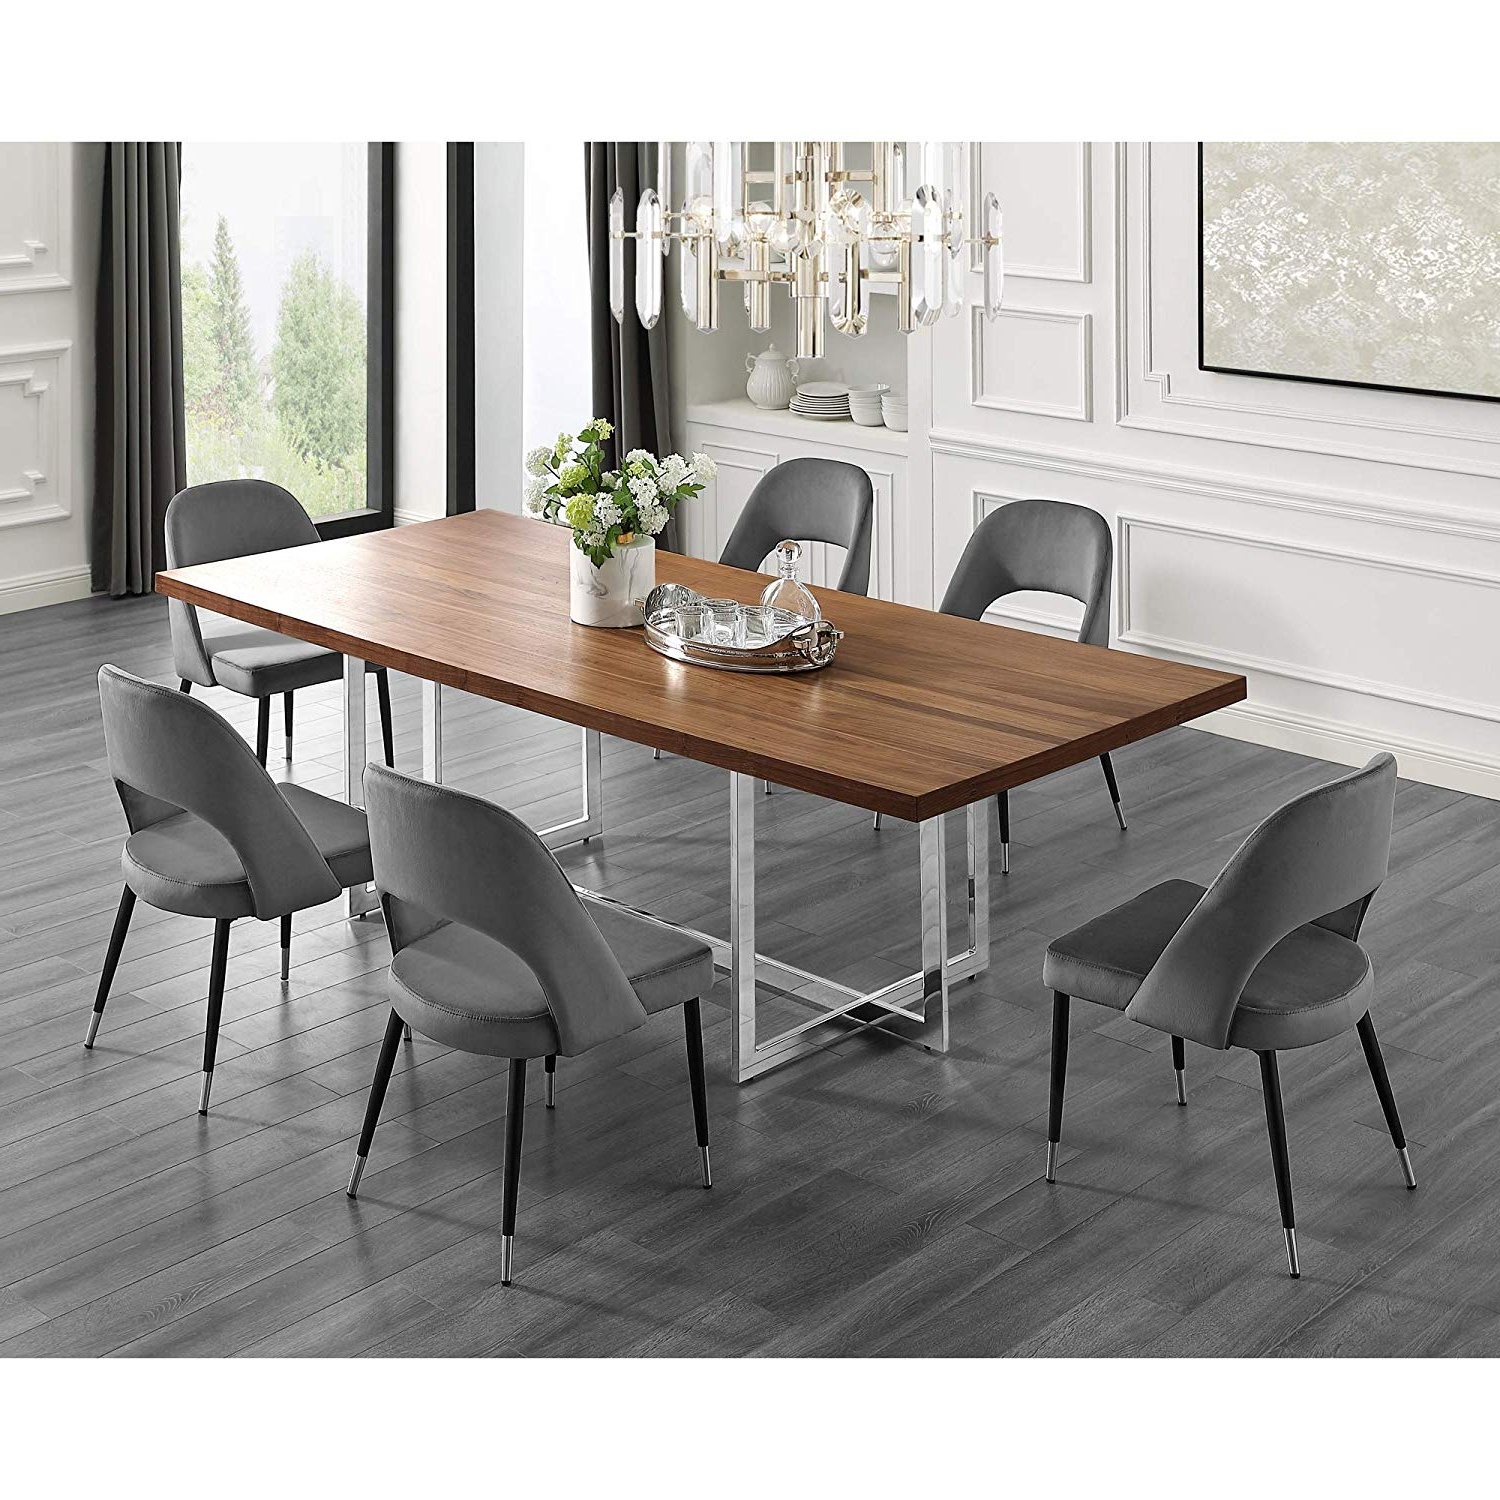 Chrome Contemporary Square Casual Dining Tables Inside Most Current Amazon – Maxim Wood Veneer Dining Table (View 8 of 25)